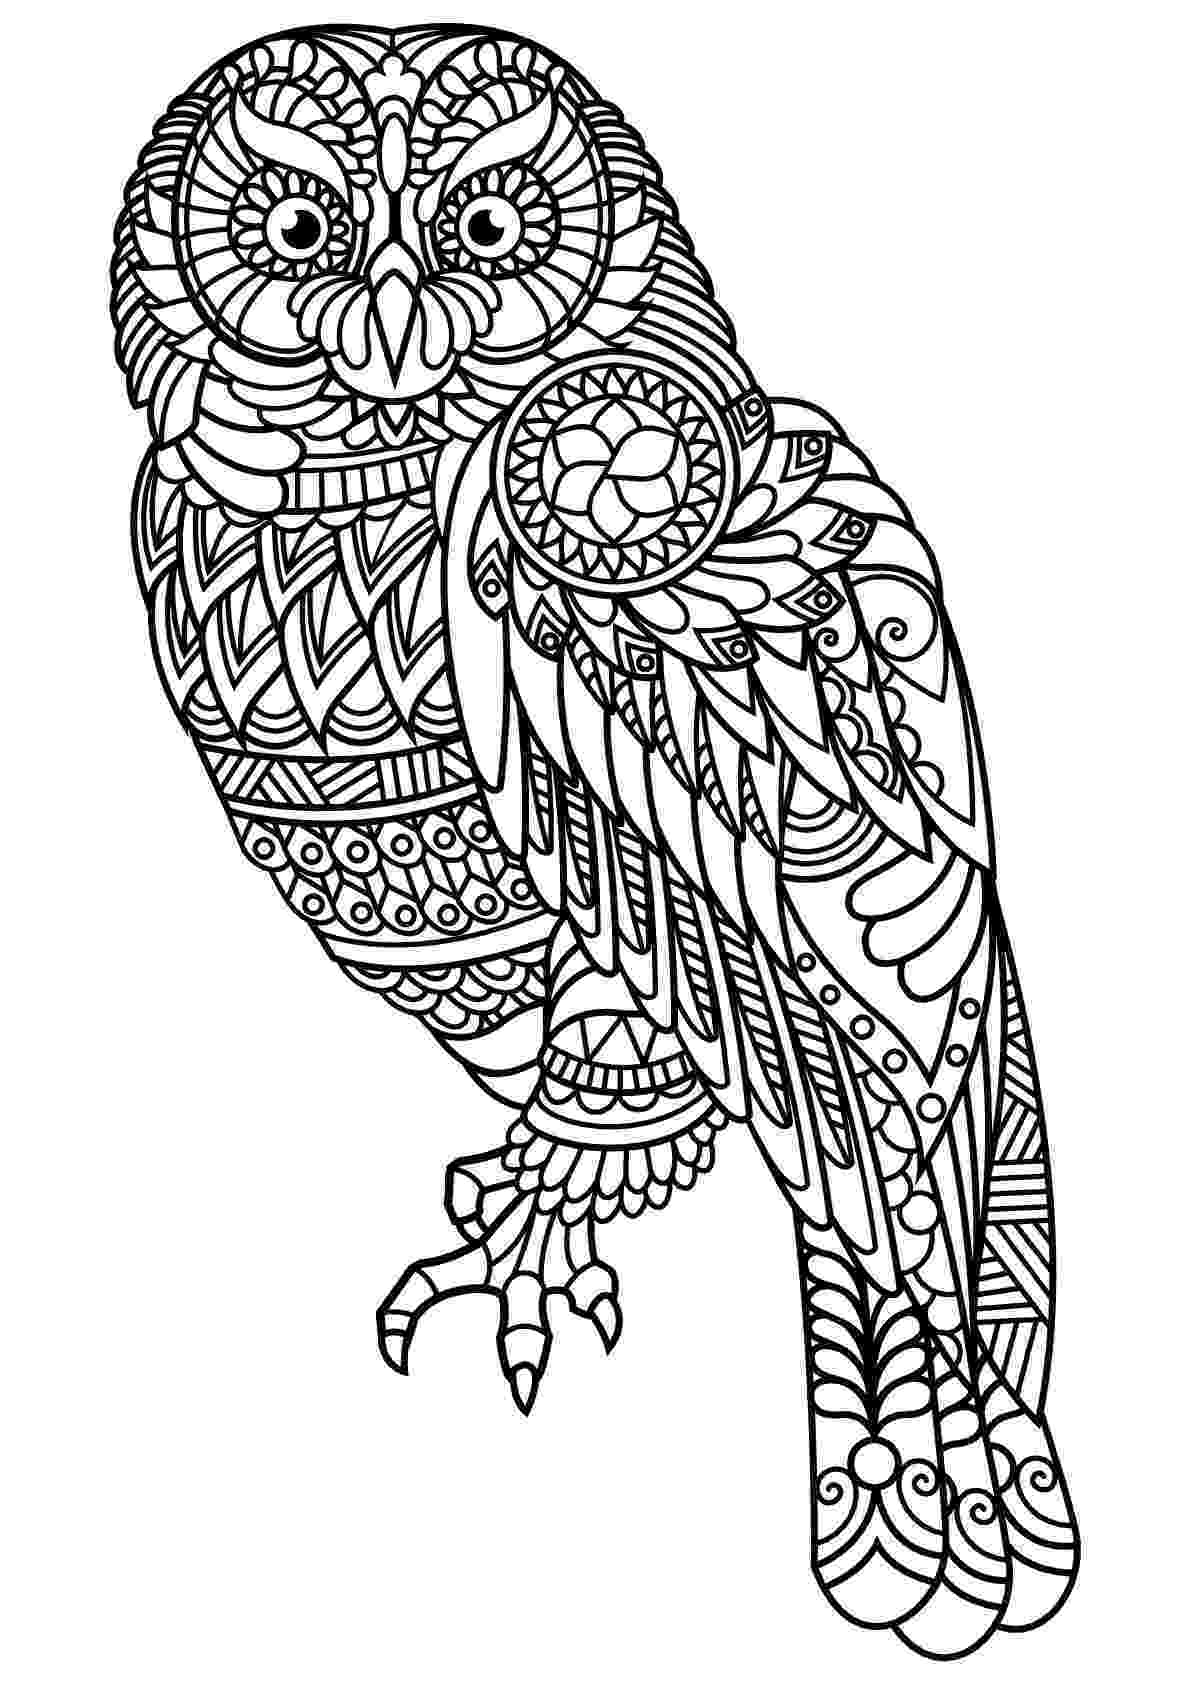 colored pictures of owls coloring pages of owls to print owl coloring page 29 colored pictures owls of